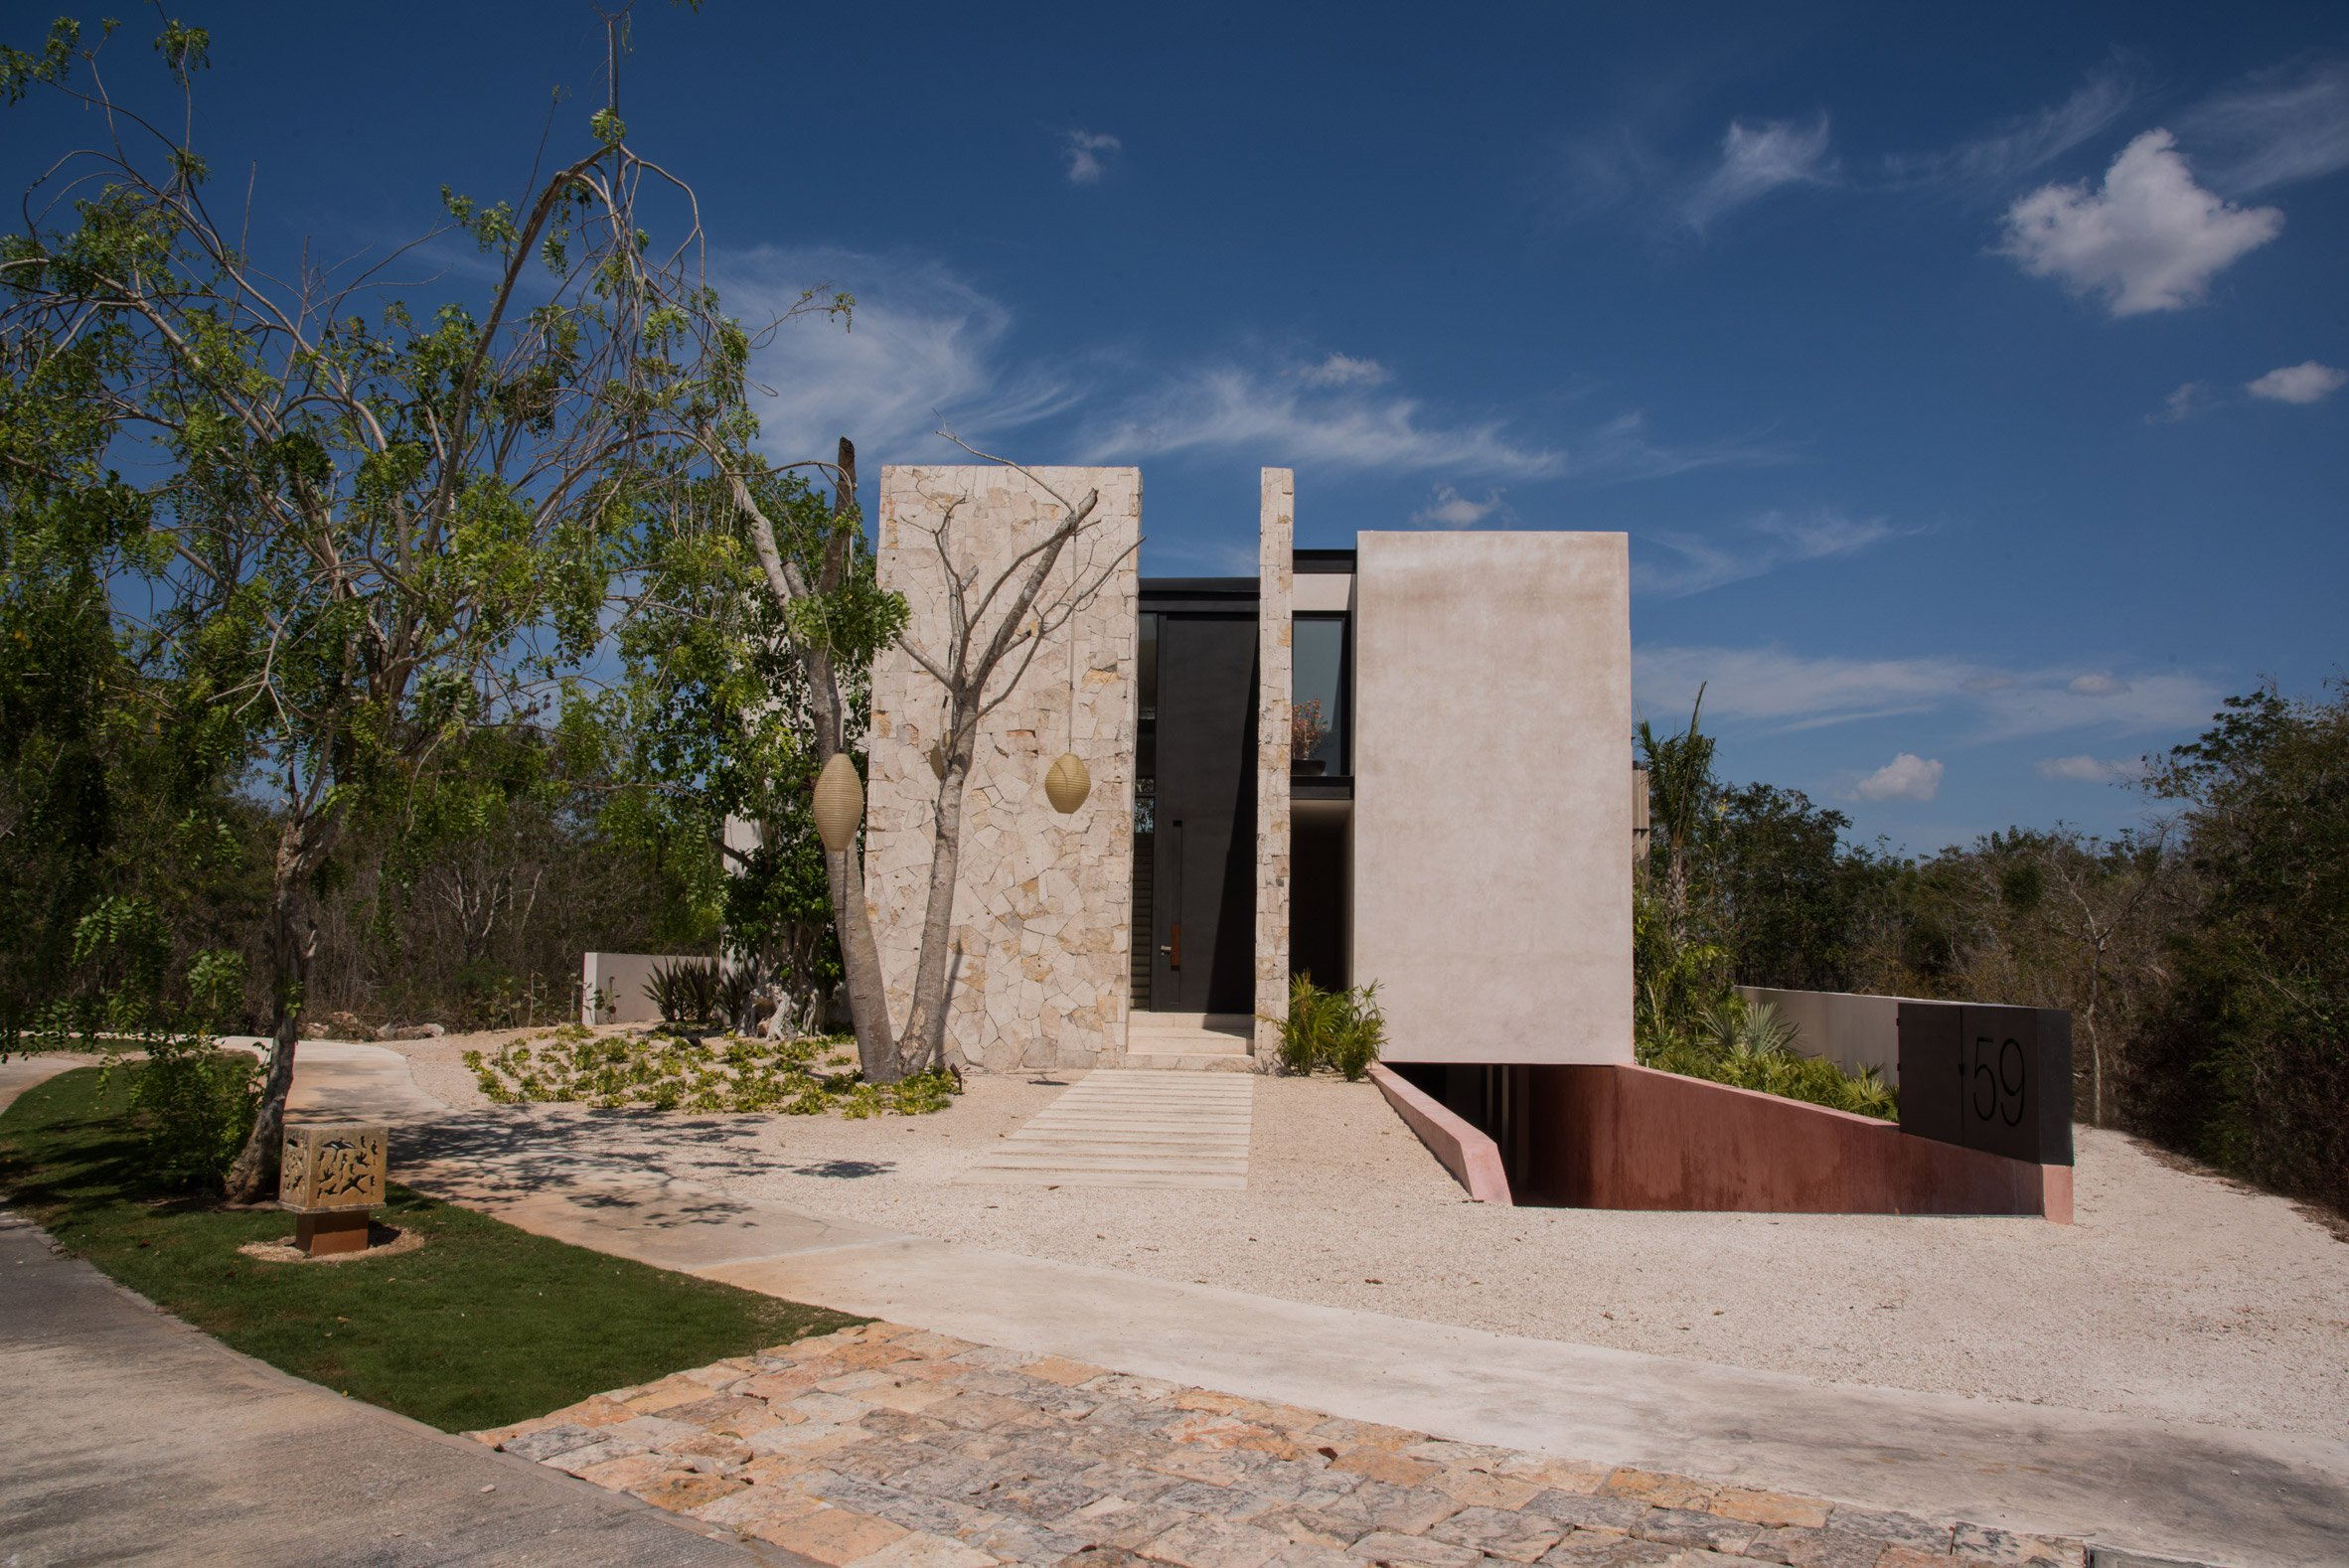 casa chaaltun tescala architects architecture residential houses mexico dezeen 2364 col 10 - Wonderful modern house with slatted marble walls in Mexico